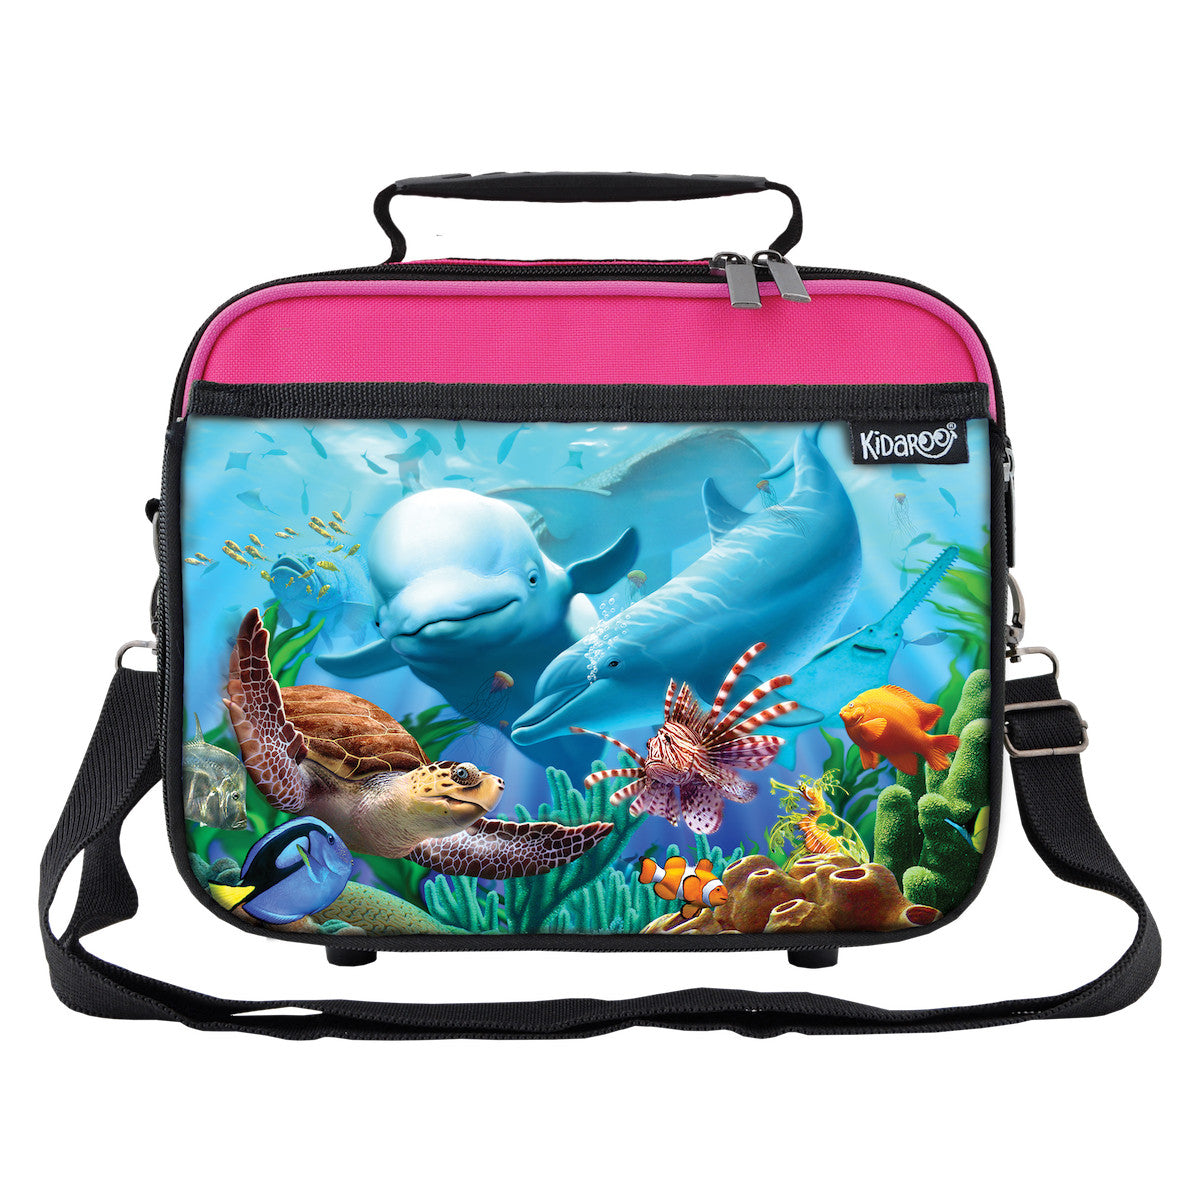 Sea Village School Lunchbox, Tote Bag for Boys, Girls, Kids